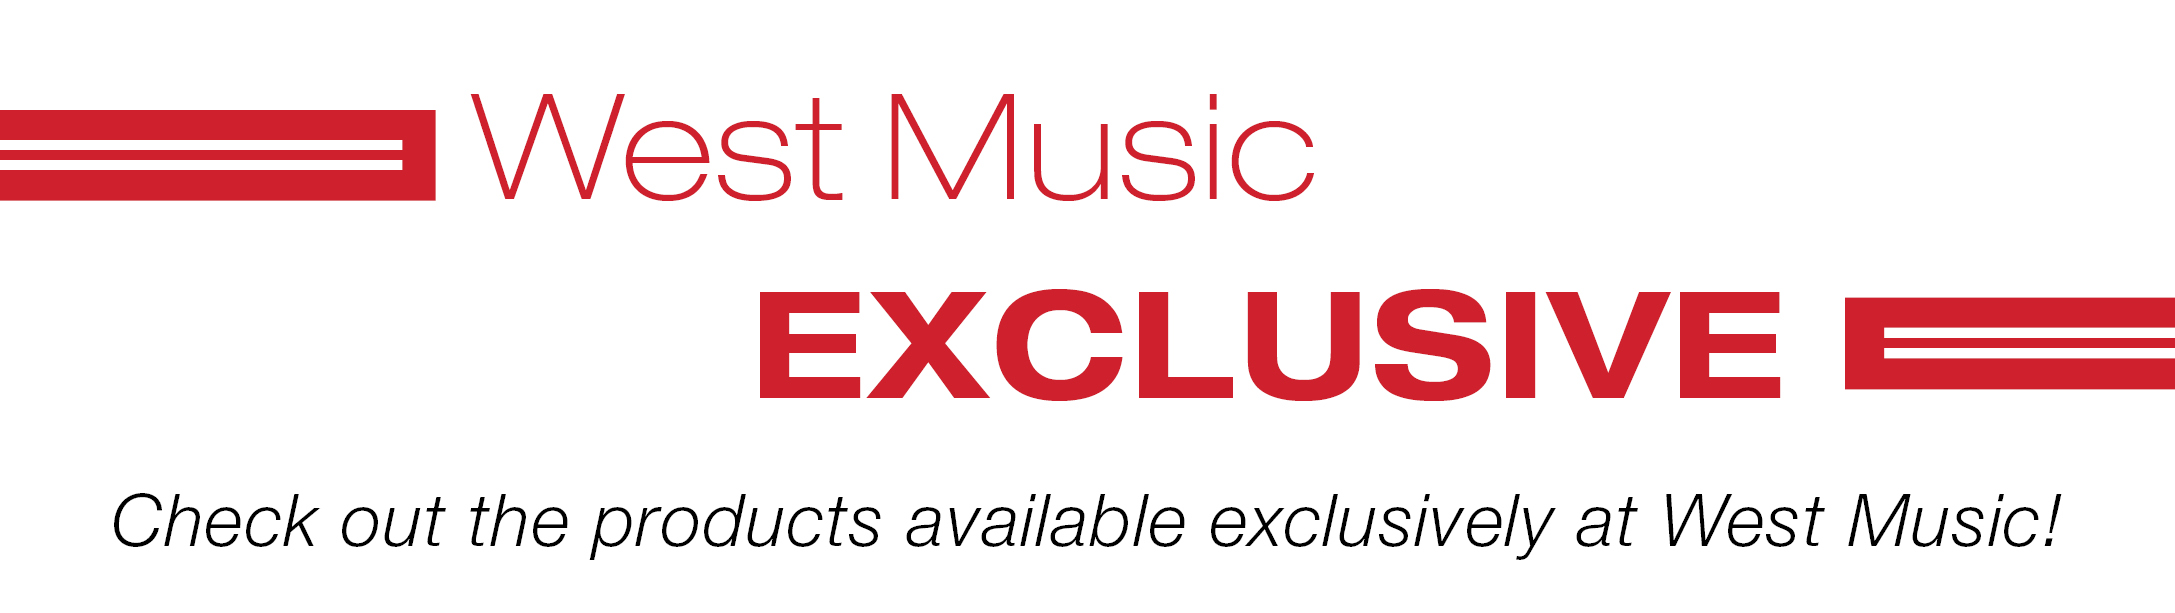 West Music Exclusive Products